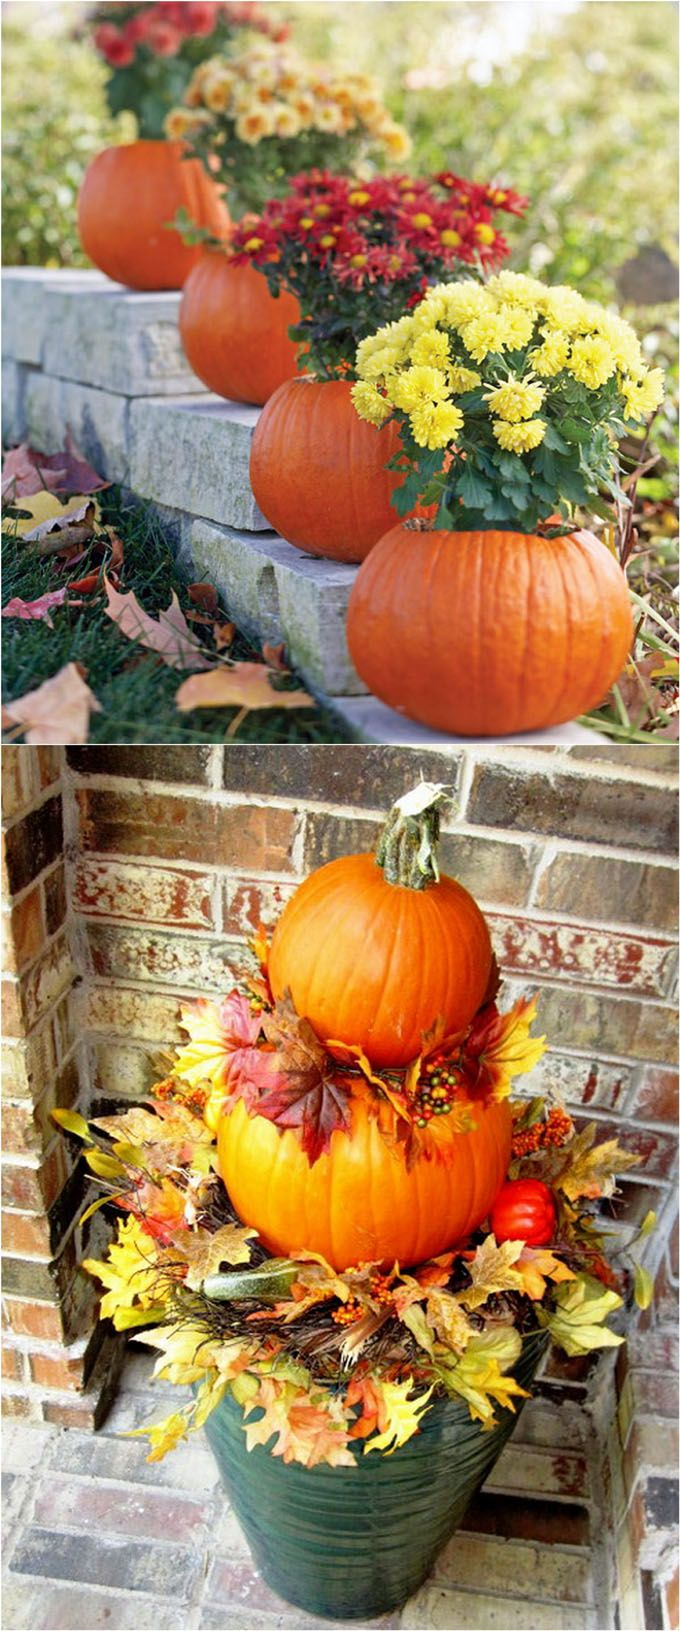 25 Splendid Diy Fall Outdoor Decorations Awesome Fall